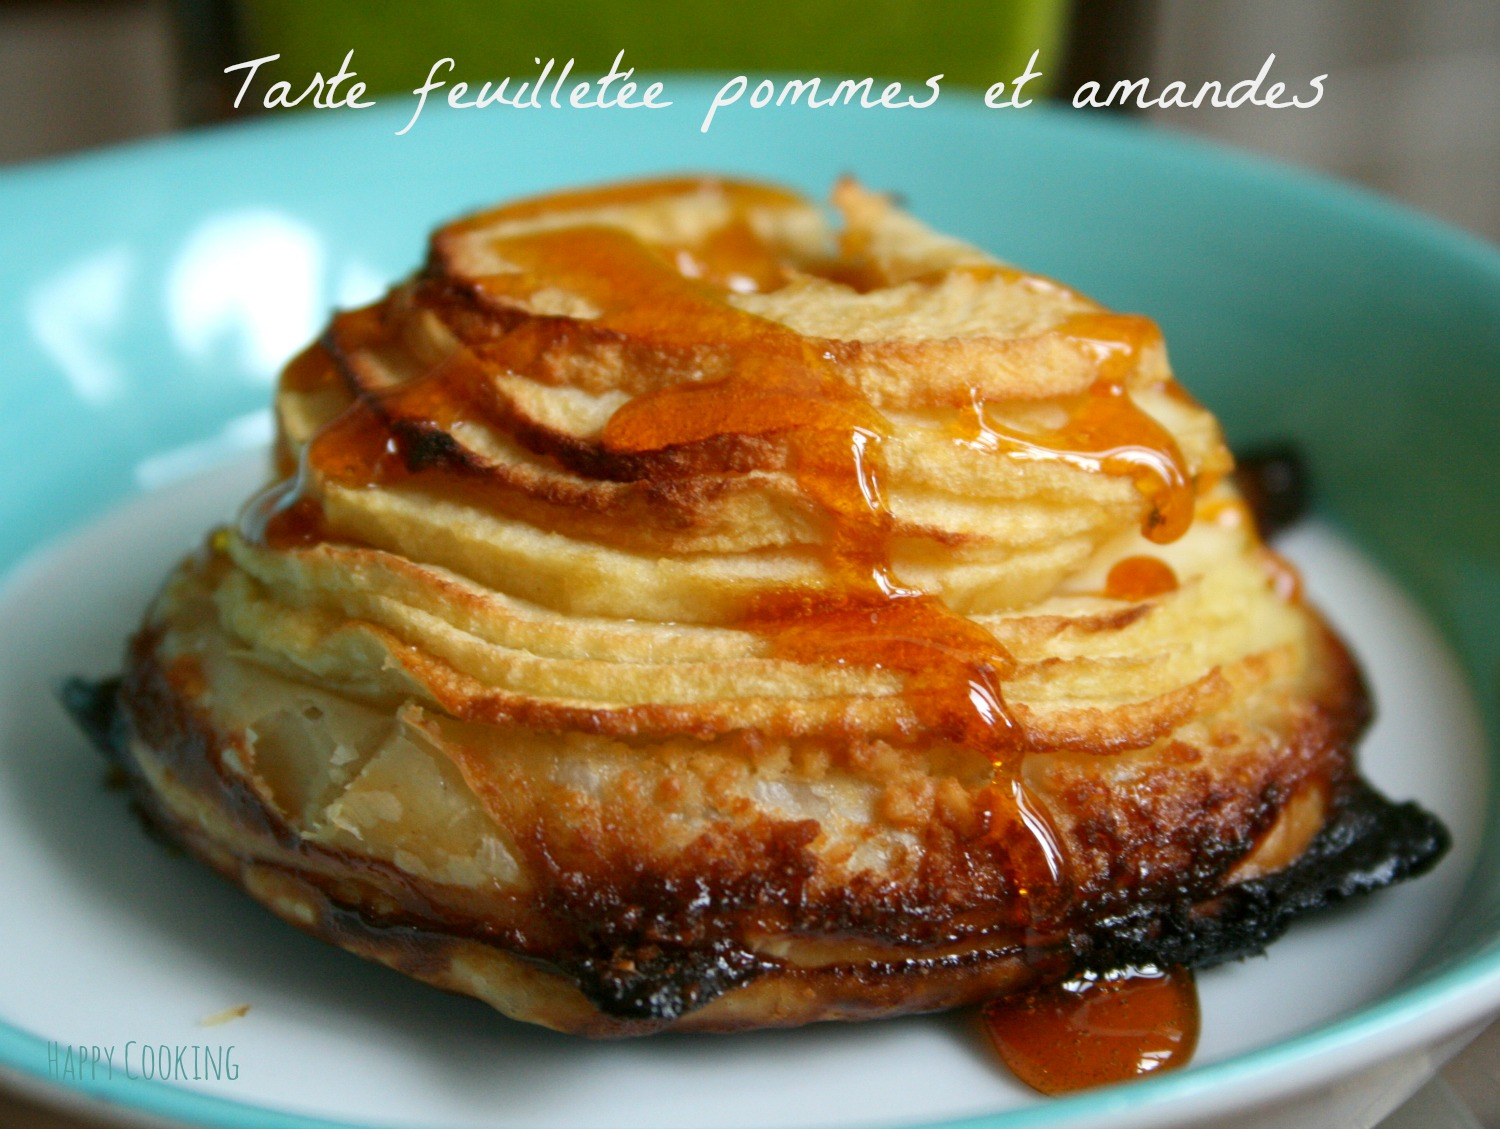 tarte aux pommes cr 232 me d amandes et caramel d apr 232 s jacques g 233 nin happy cooking